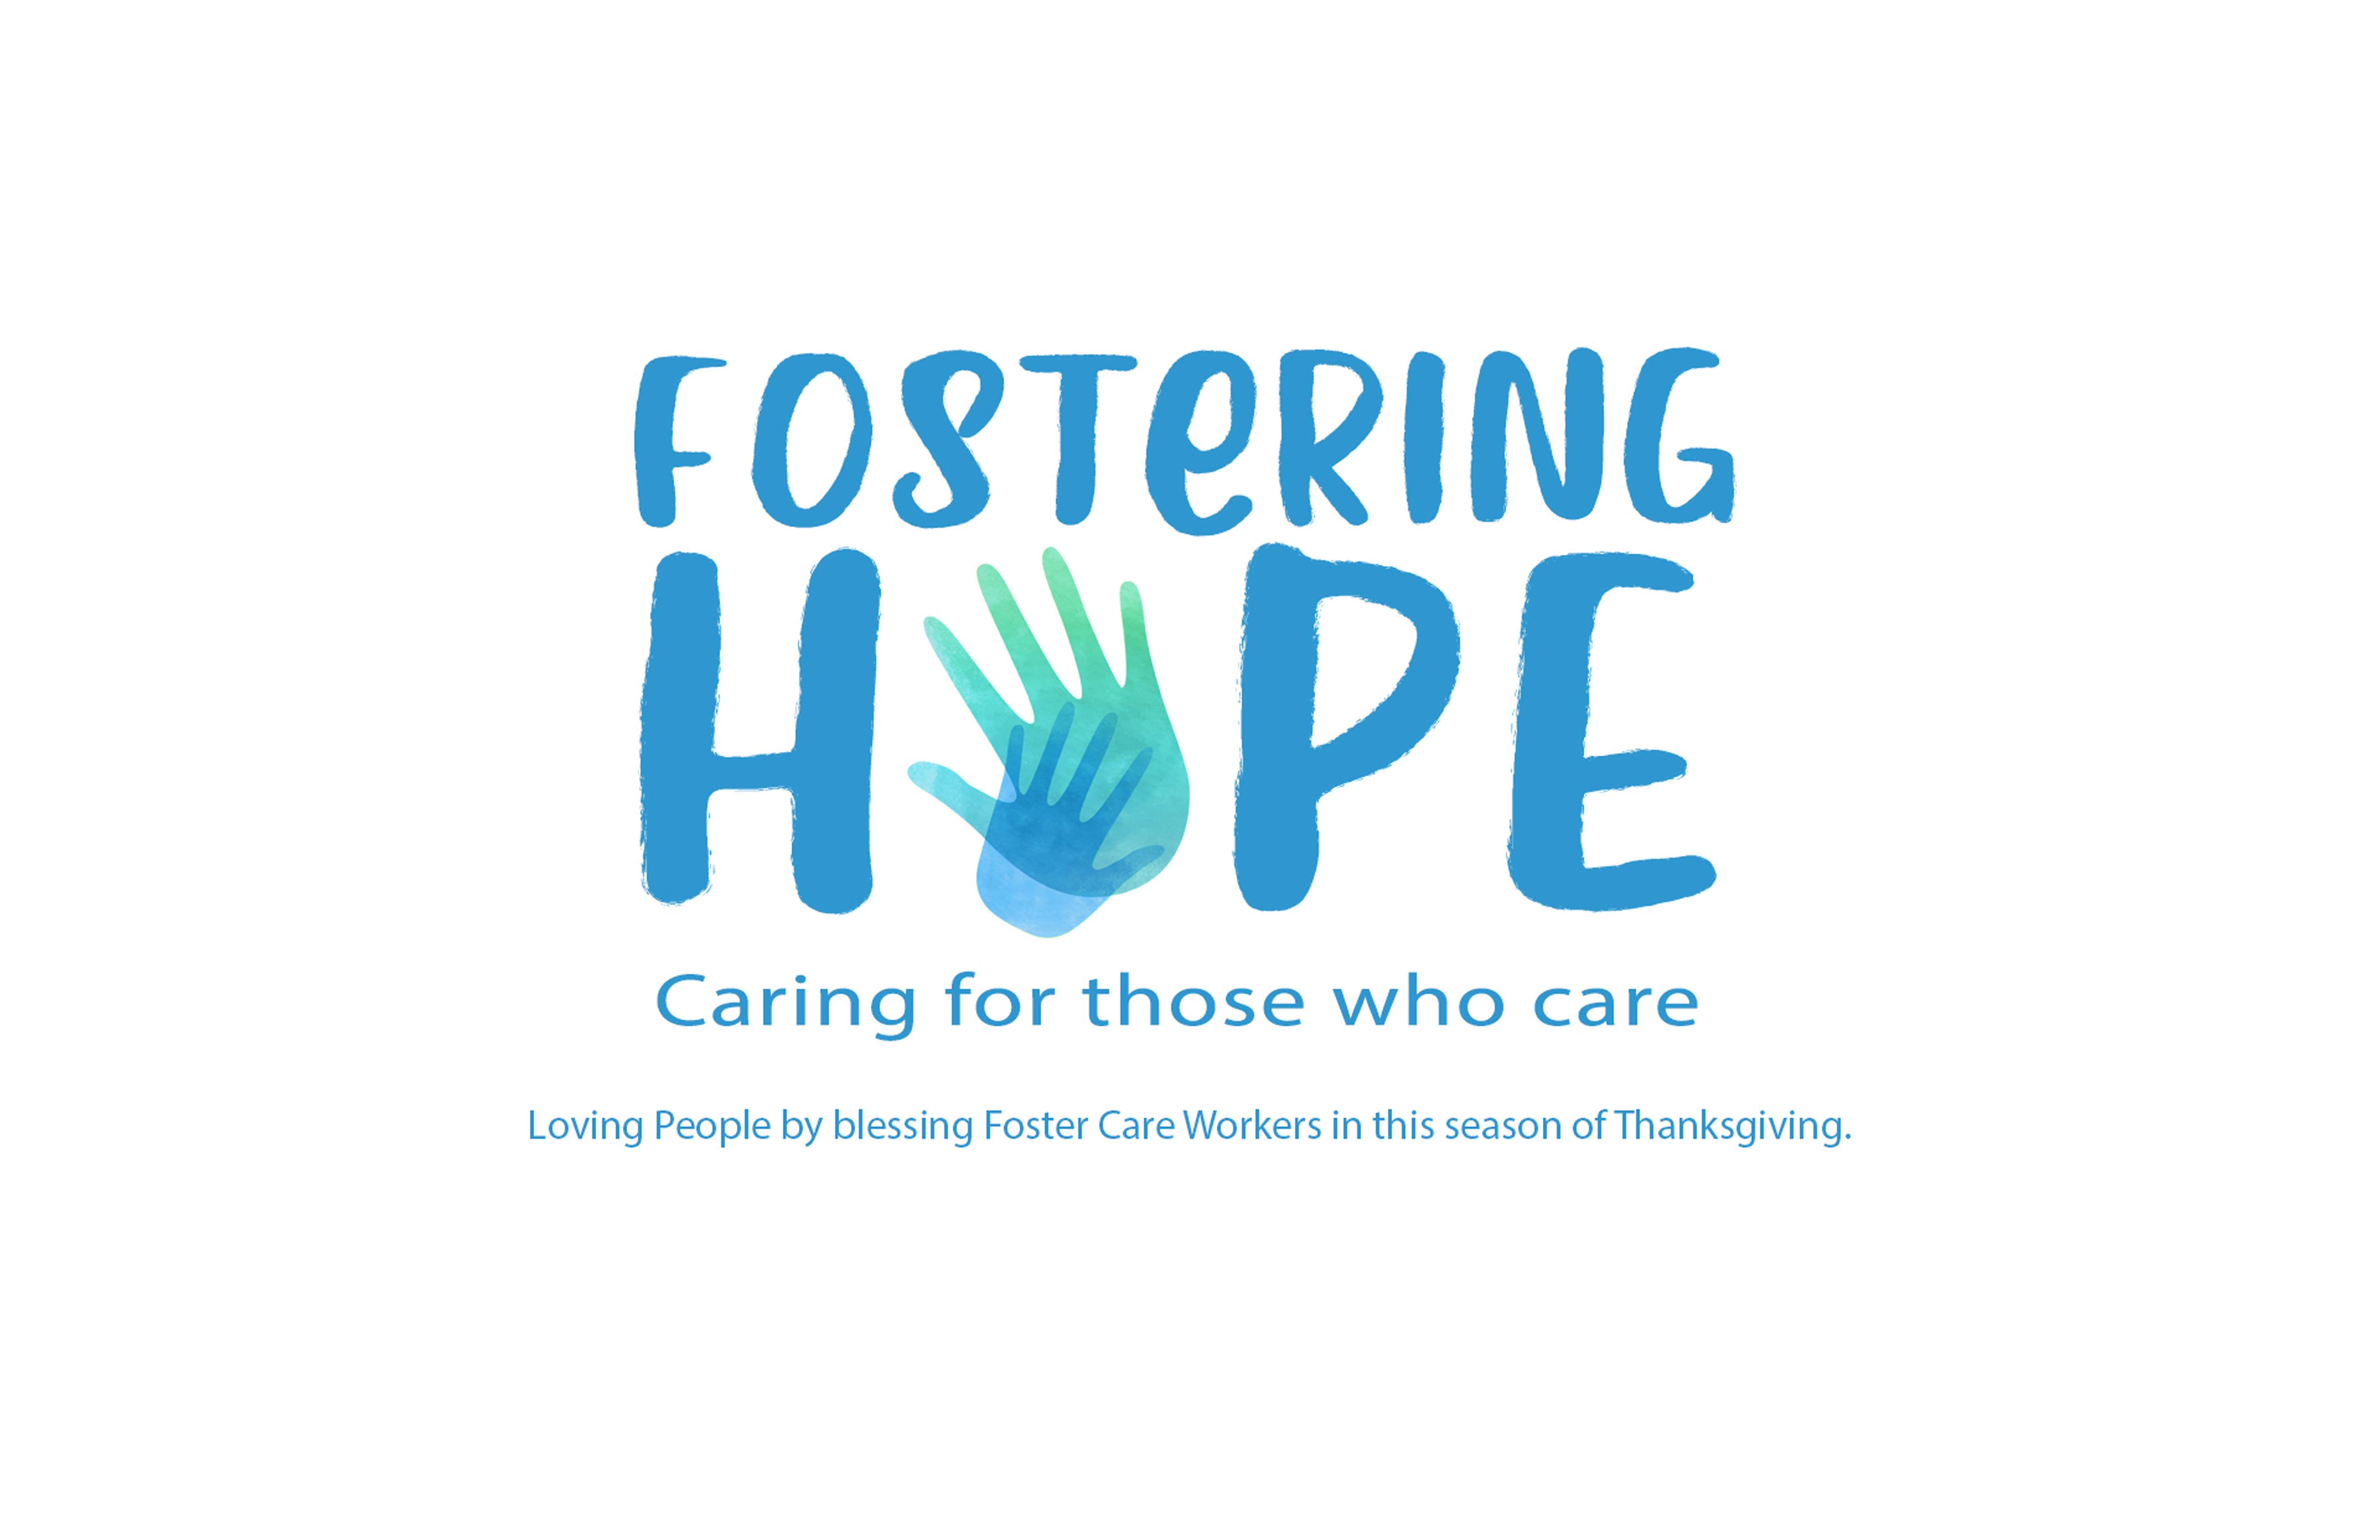 Fosteringhope sign